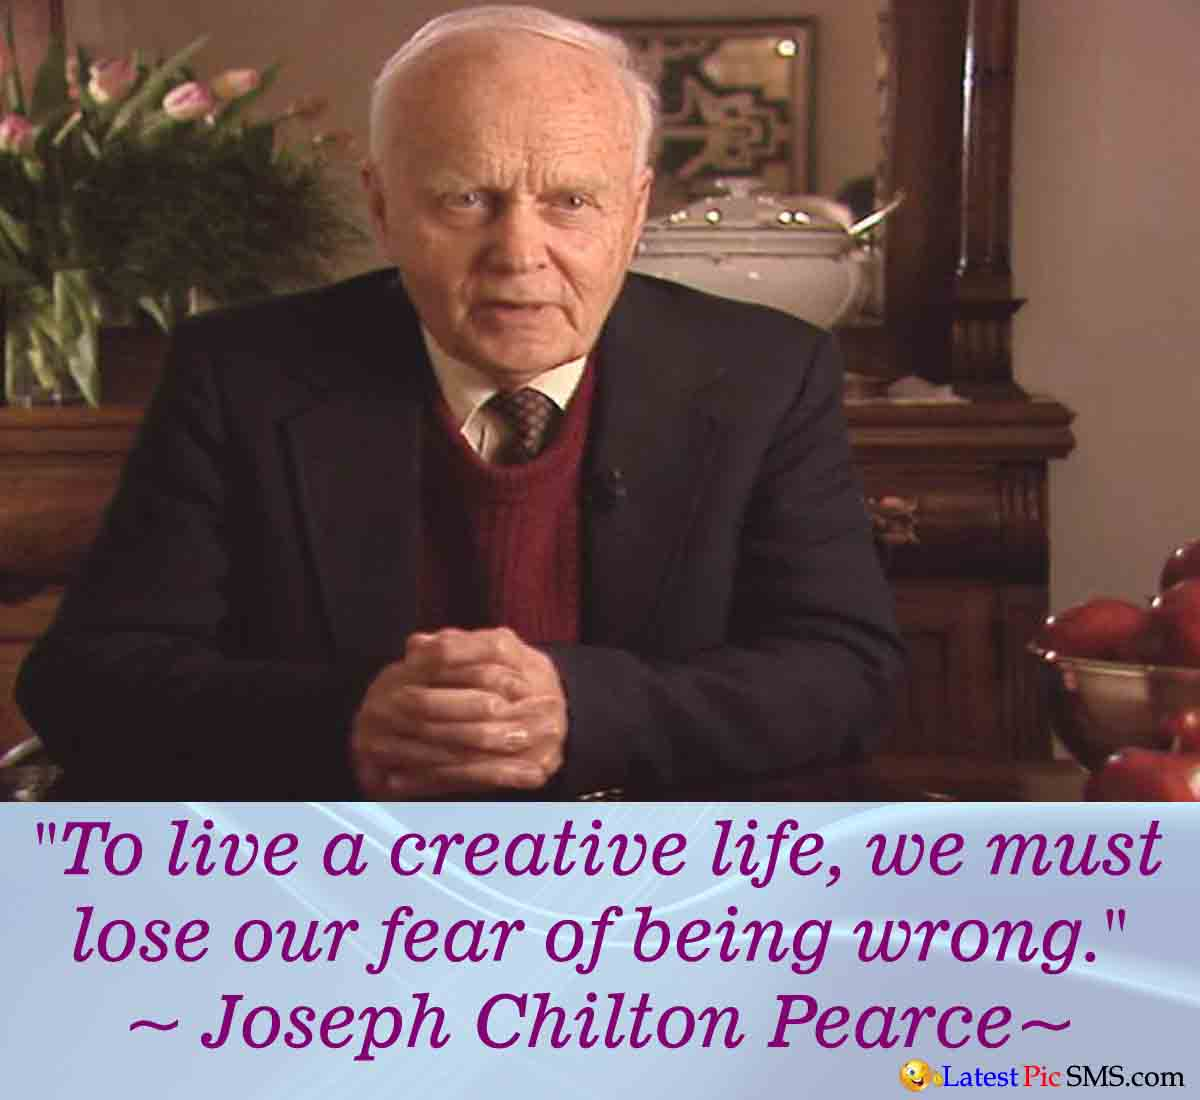 Joseph Chilton Pearce life quotes - Thoughts on Life Images for Whatsapp and Facebook